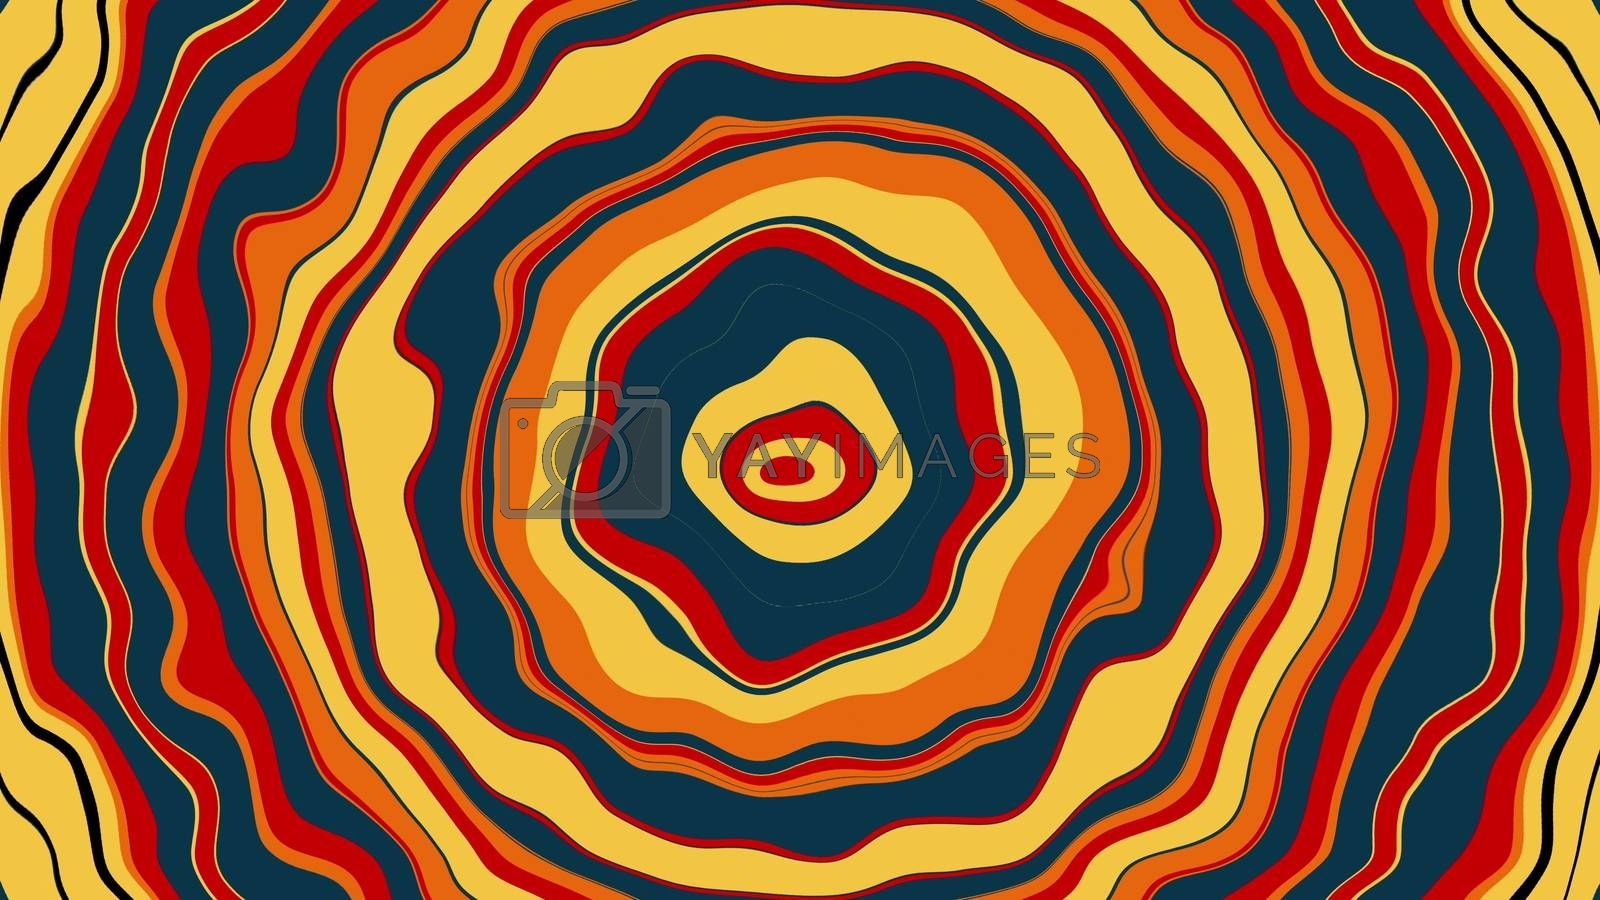 Computer generated a backdrop from colorful twisted stripes in circle shape. 3D rendering of abstract wallpaper